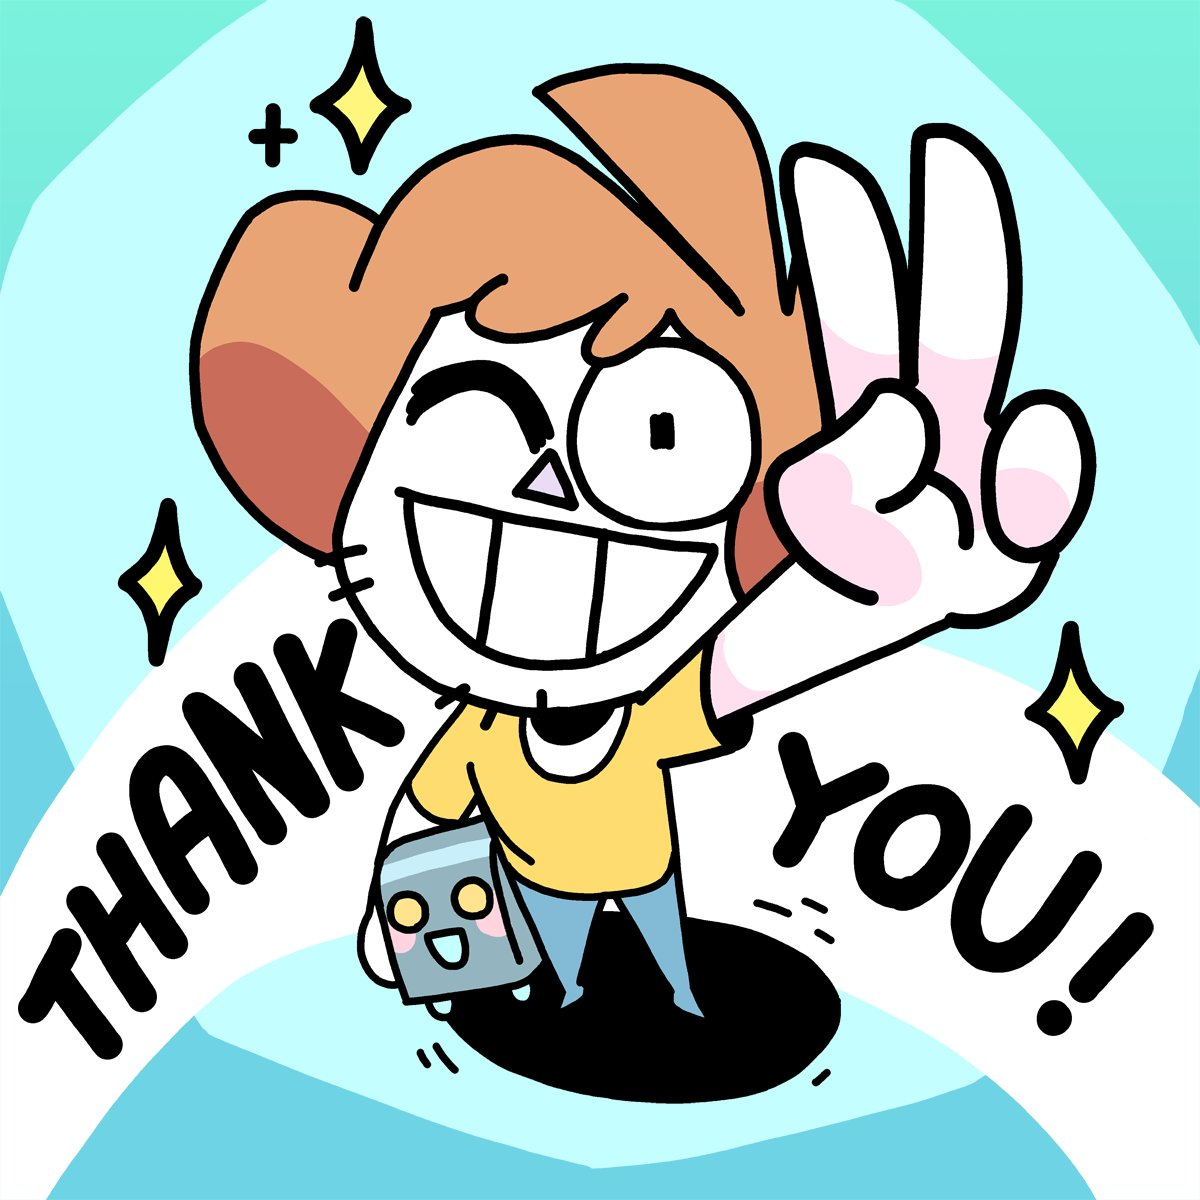 thank you all for making that kickstarter a shining success